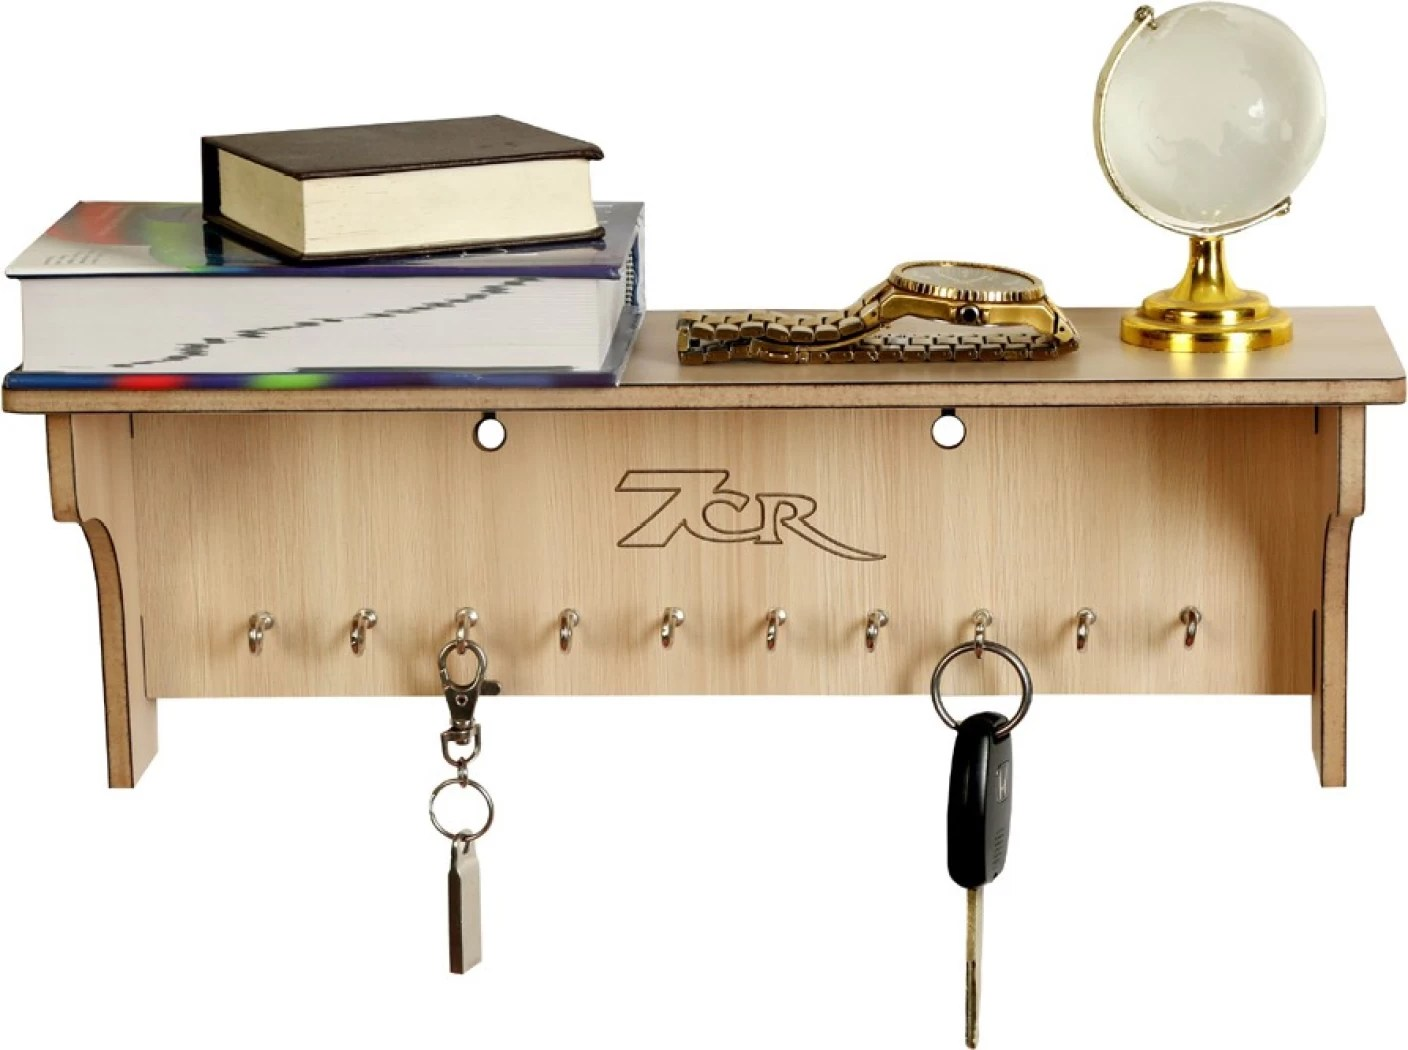 Wooden Key Holder With Shelf 7cr Wooden Key Holder Price In India Buy 7cr Wooden Key